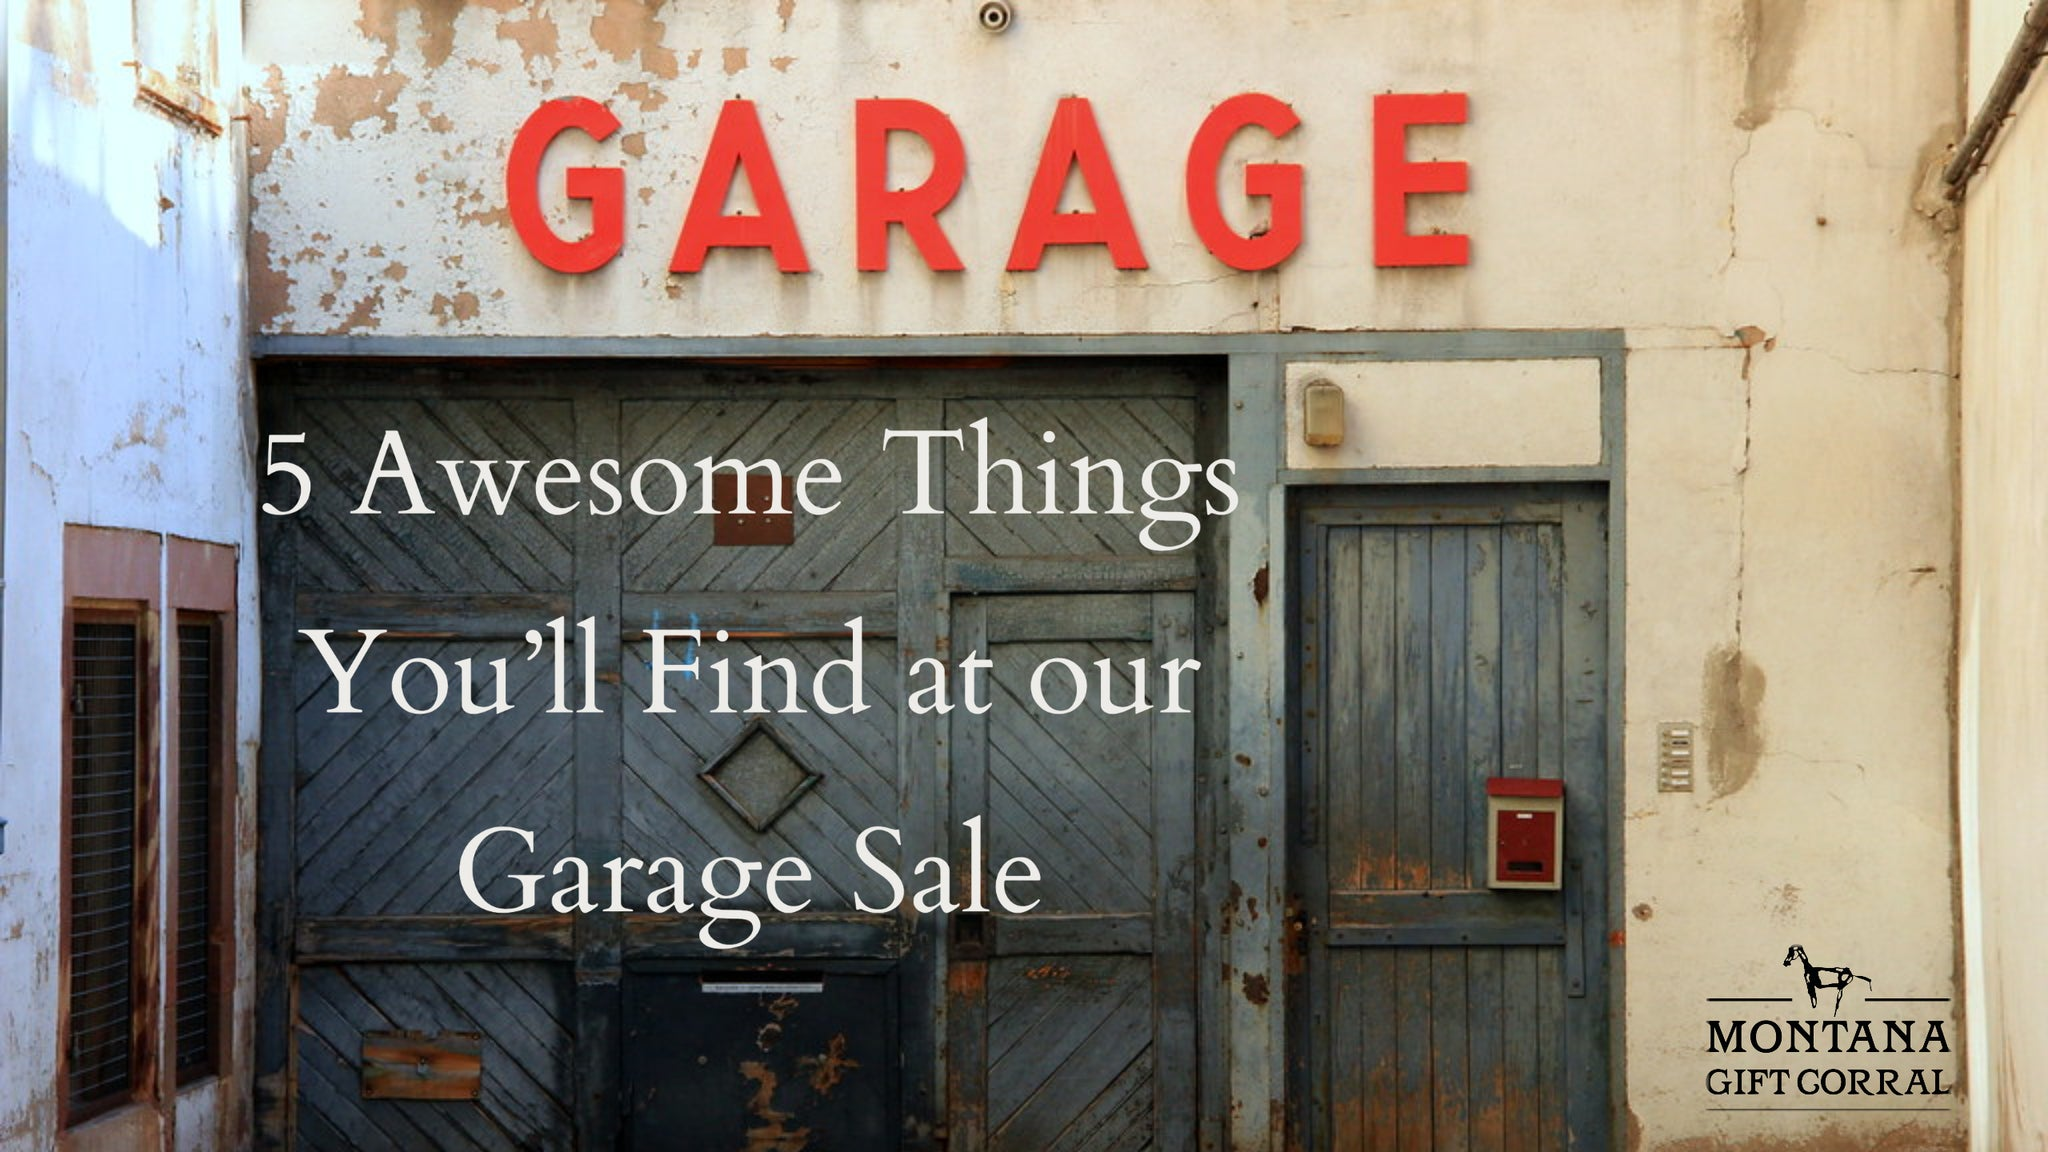 Five Awesome Things You'll Find at our Garage Sale